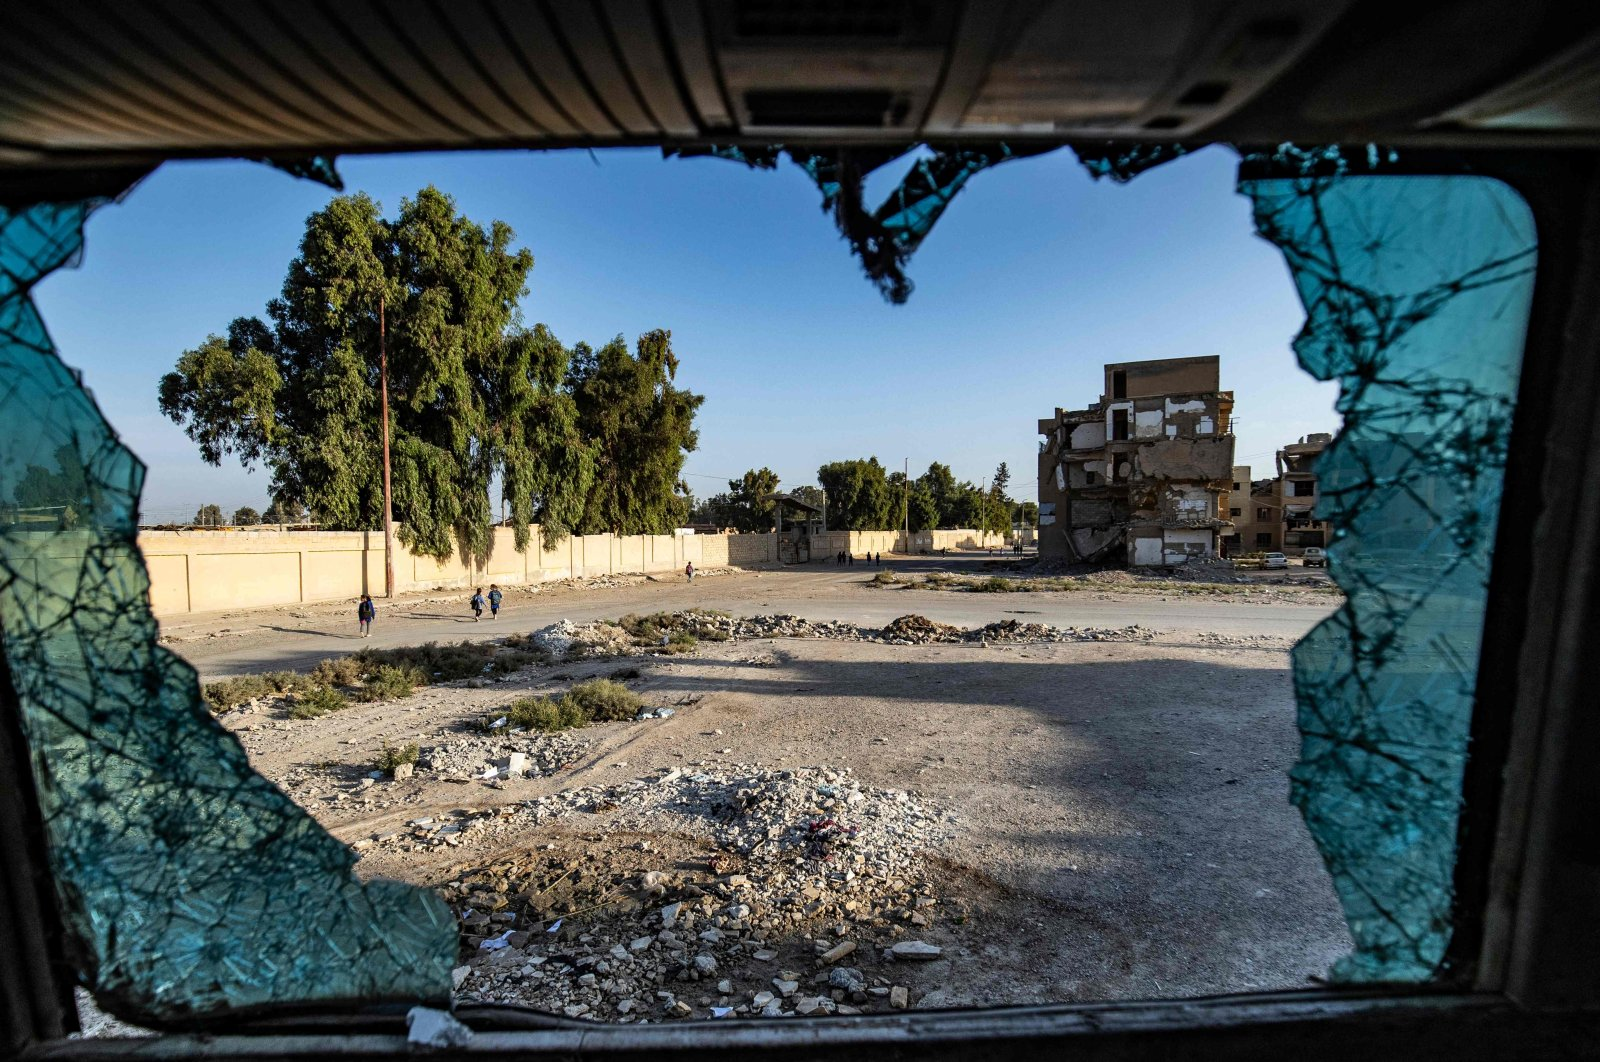 Syrian students walking to school are seen through shattered glass in the northern city of Raqqa, Syria, Sept. 23, 2021. (AFP Photo)